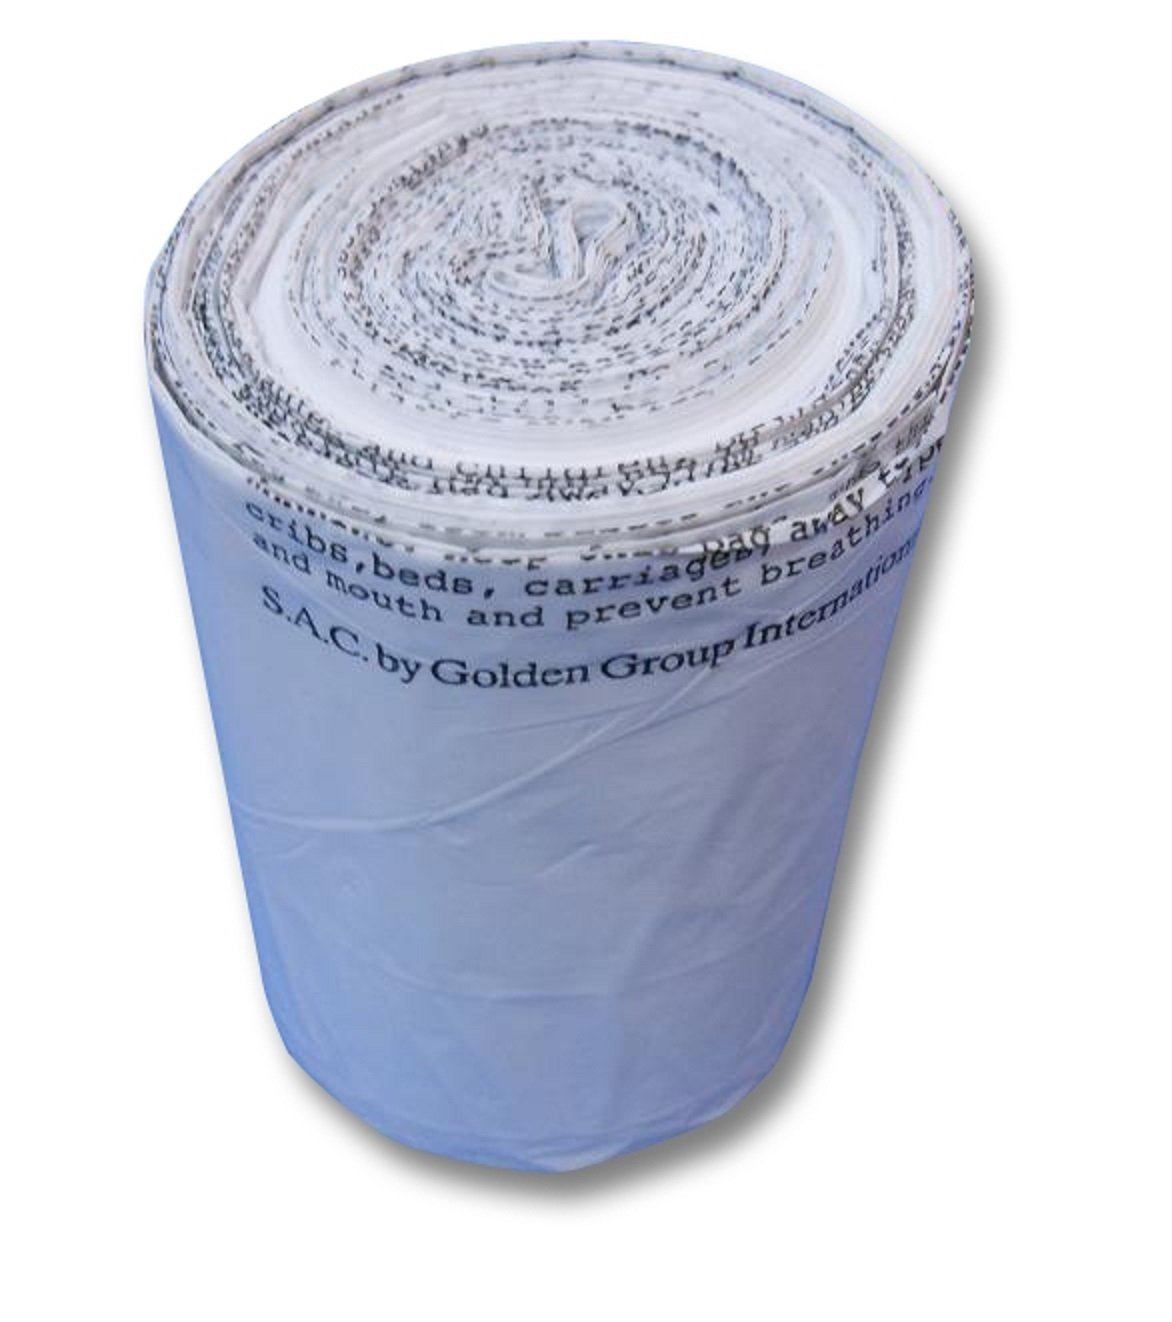 S.A.C TD9022-24 Sanitary Napkin Receptacle Liner, Degradable Plastic, 4 gal Capacity, White (Pack of 24)